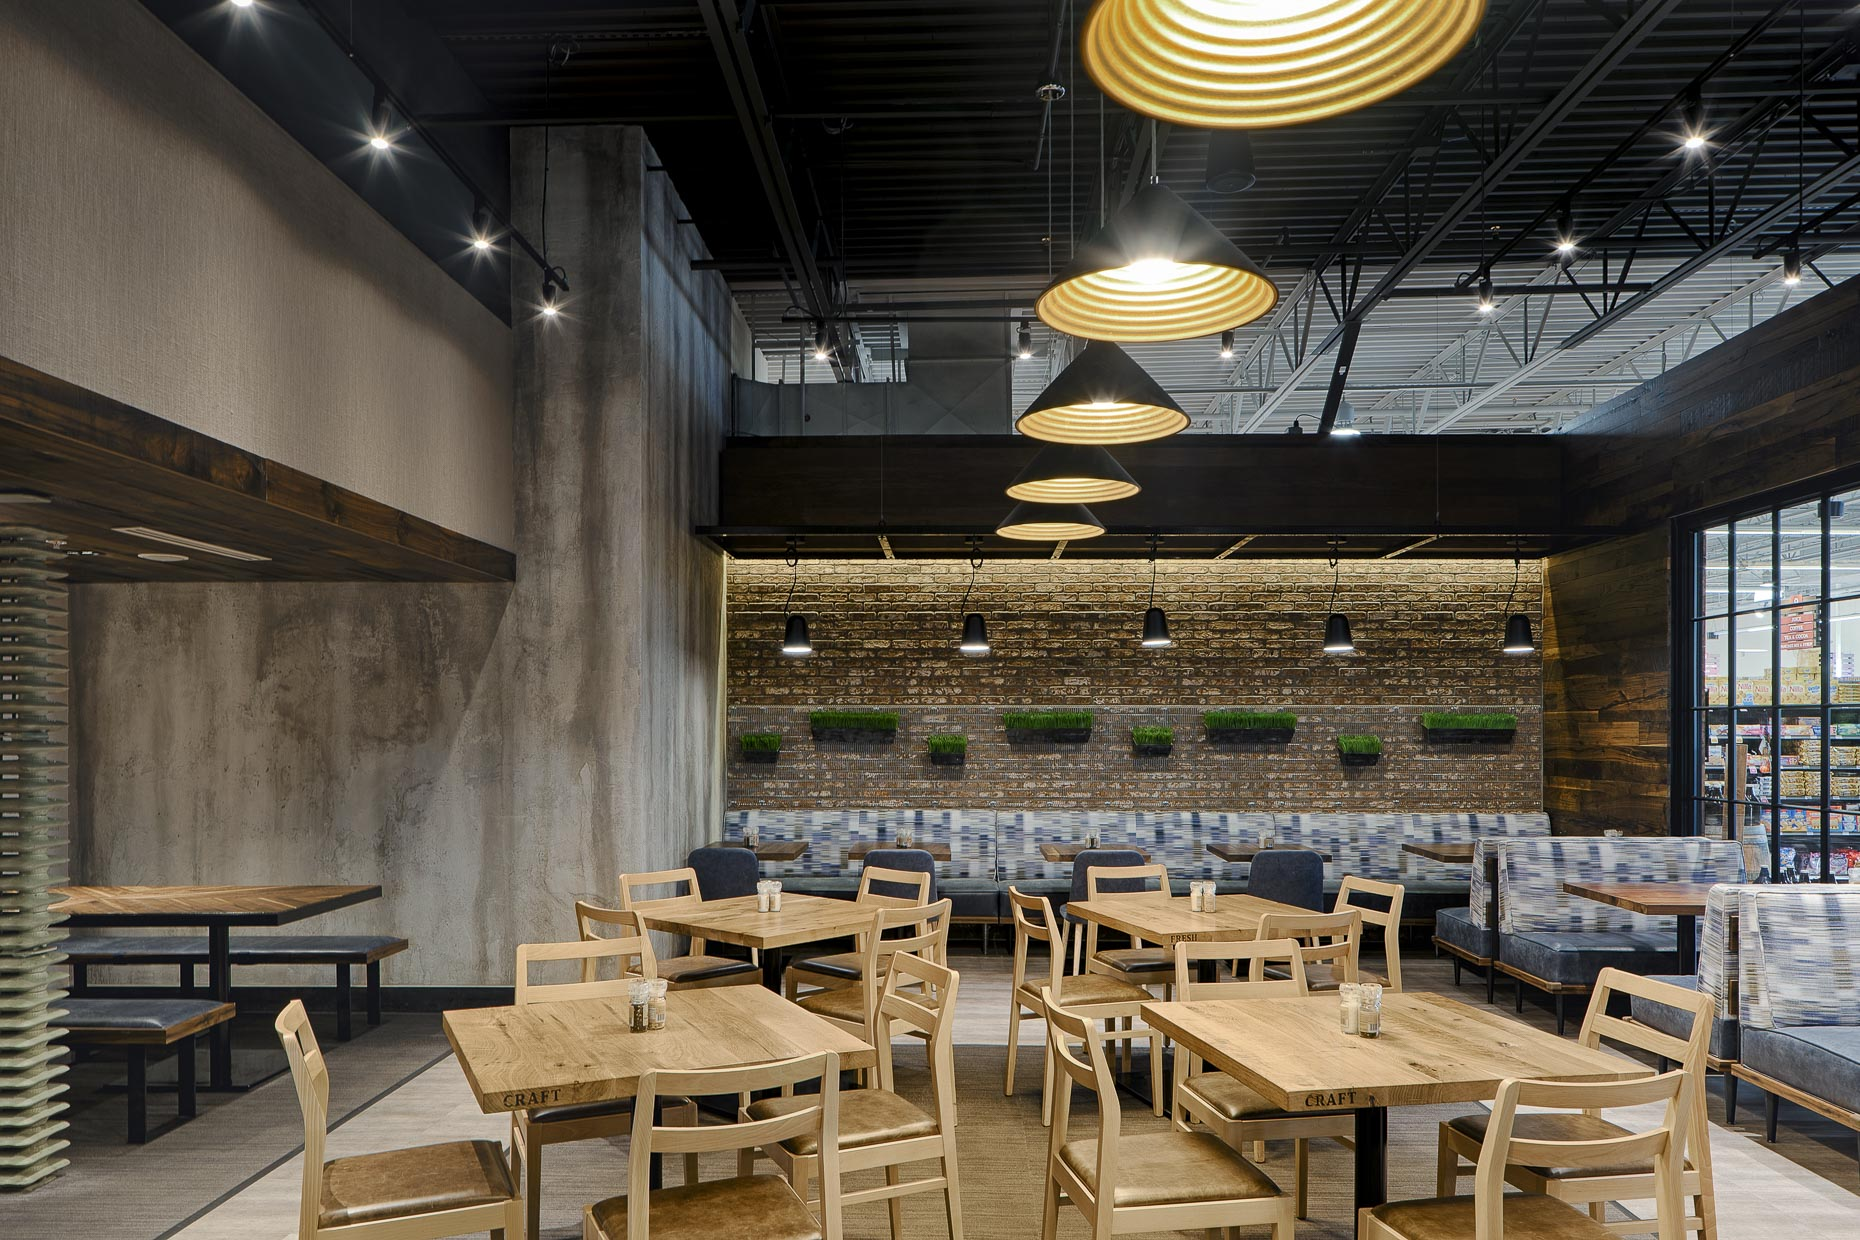 The Table at Giant Eage Market District Express by Continental Building Company photographed by Lauren K Davis based in Columbus, Ohio